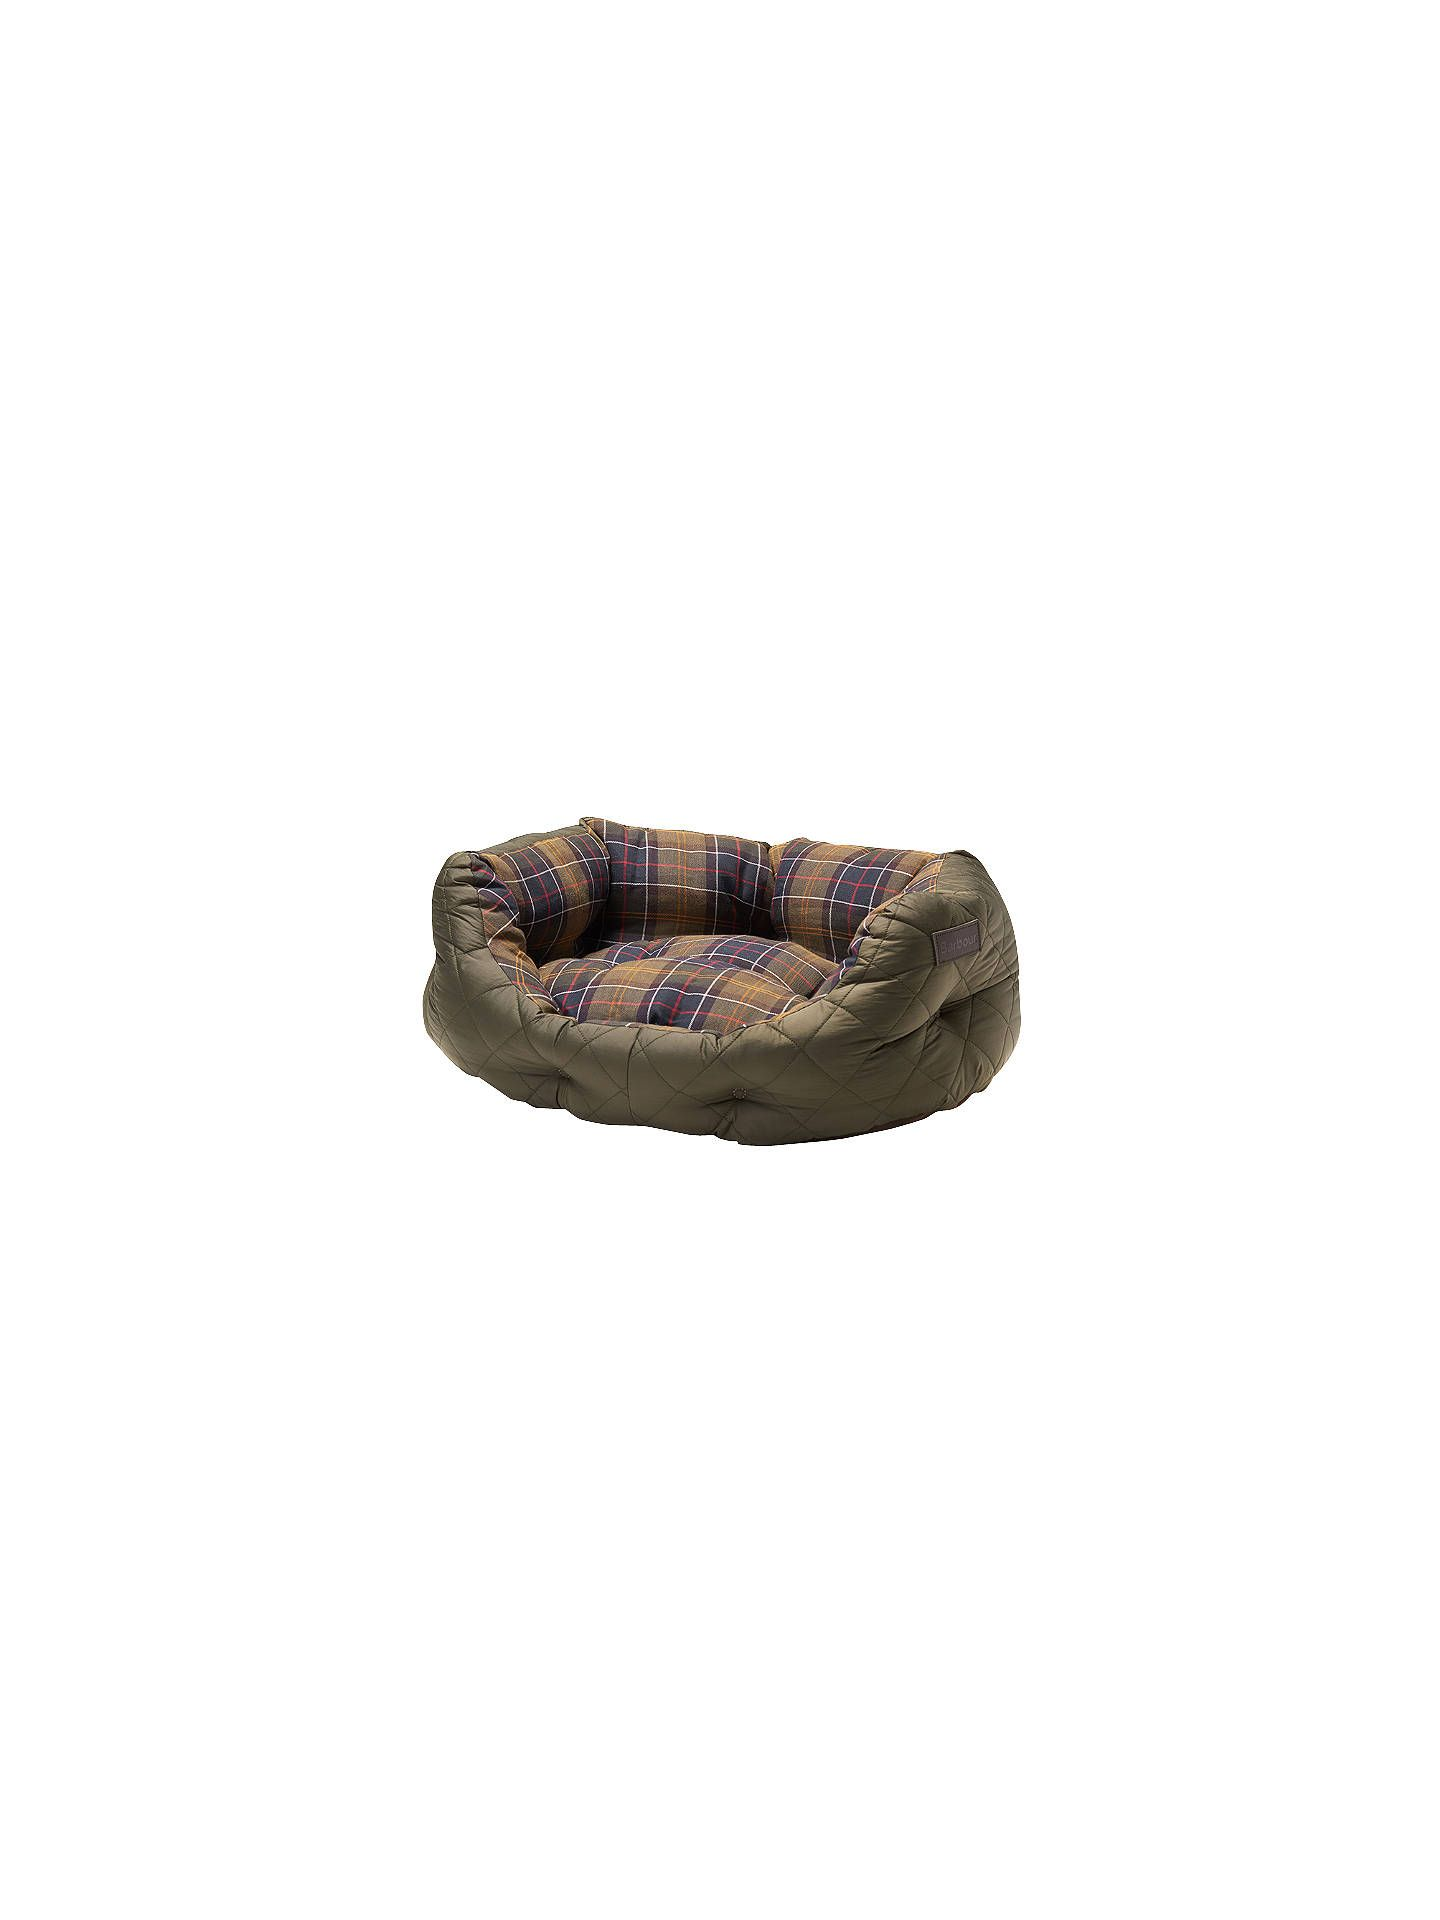 Barbour Quilted Dog Bed Dog Bed Canine Companions Quilted